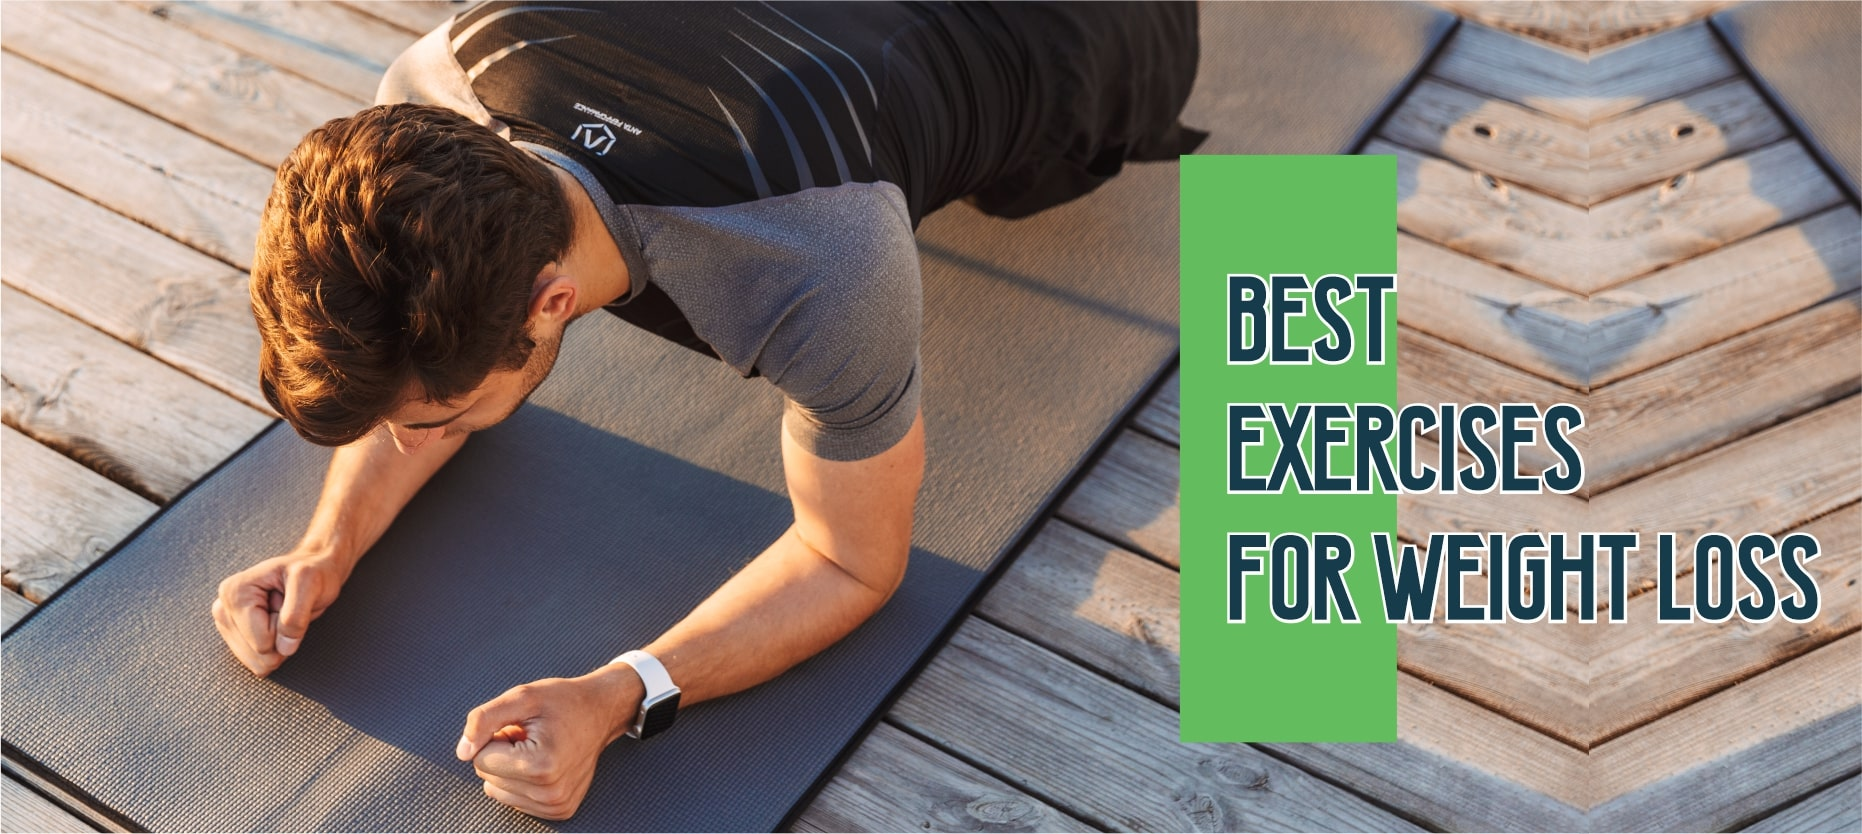 8 Best Exercises for Weight Loss